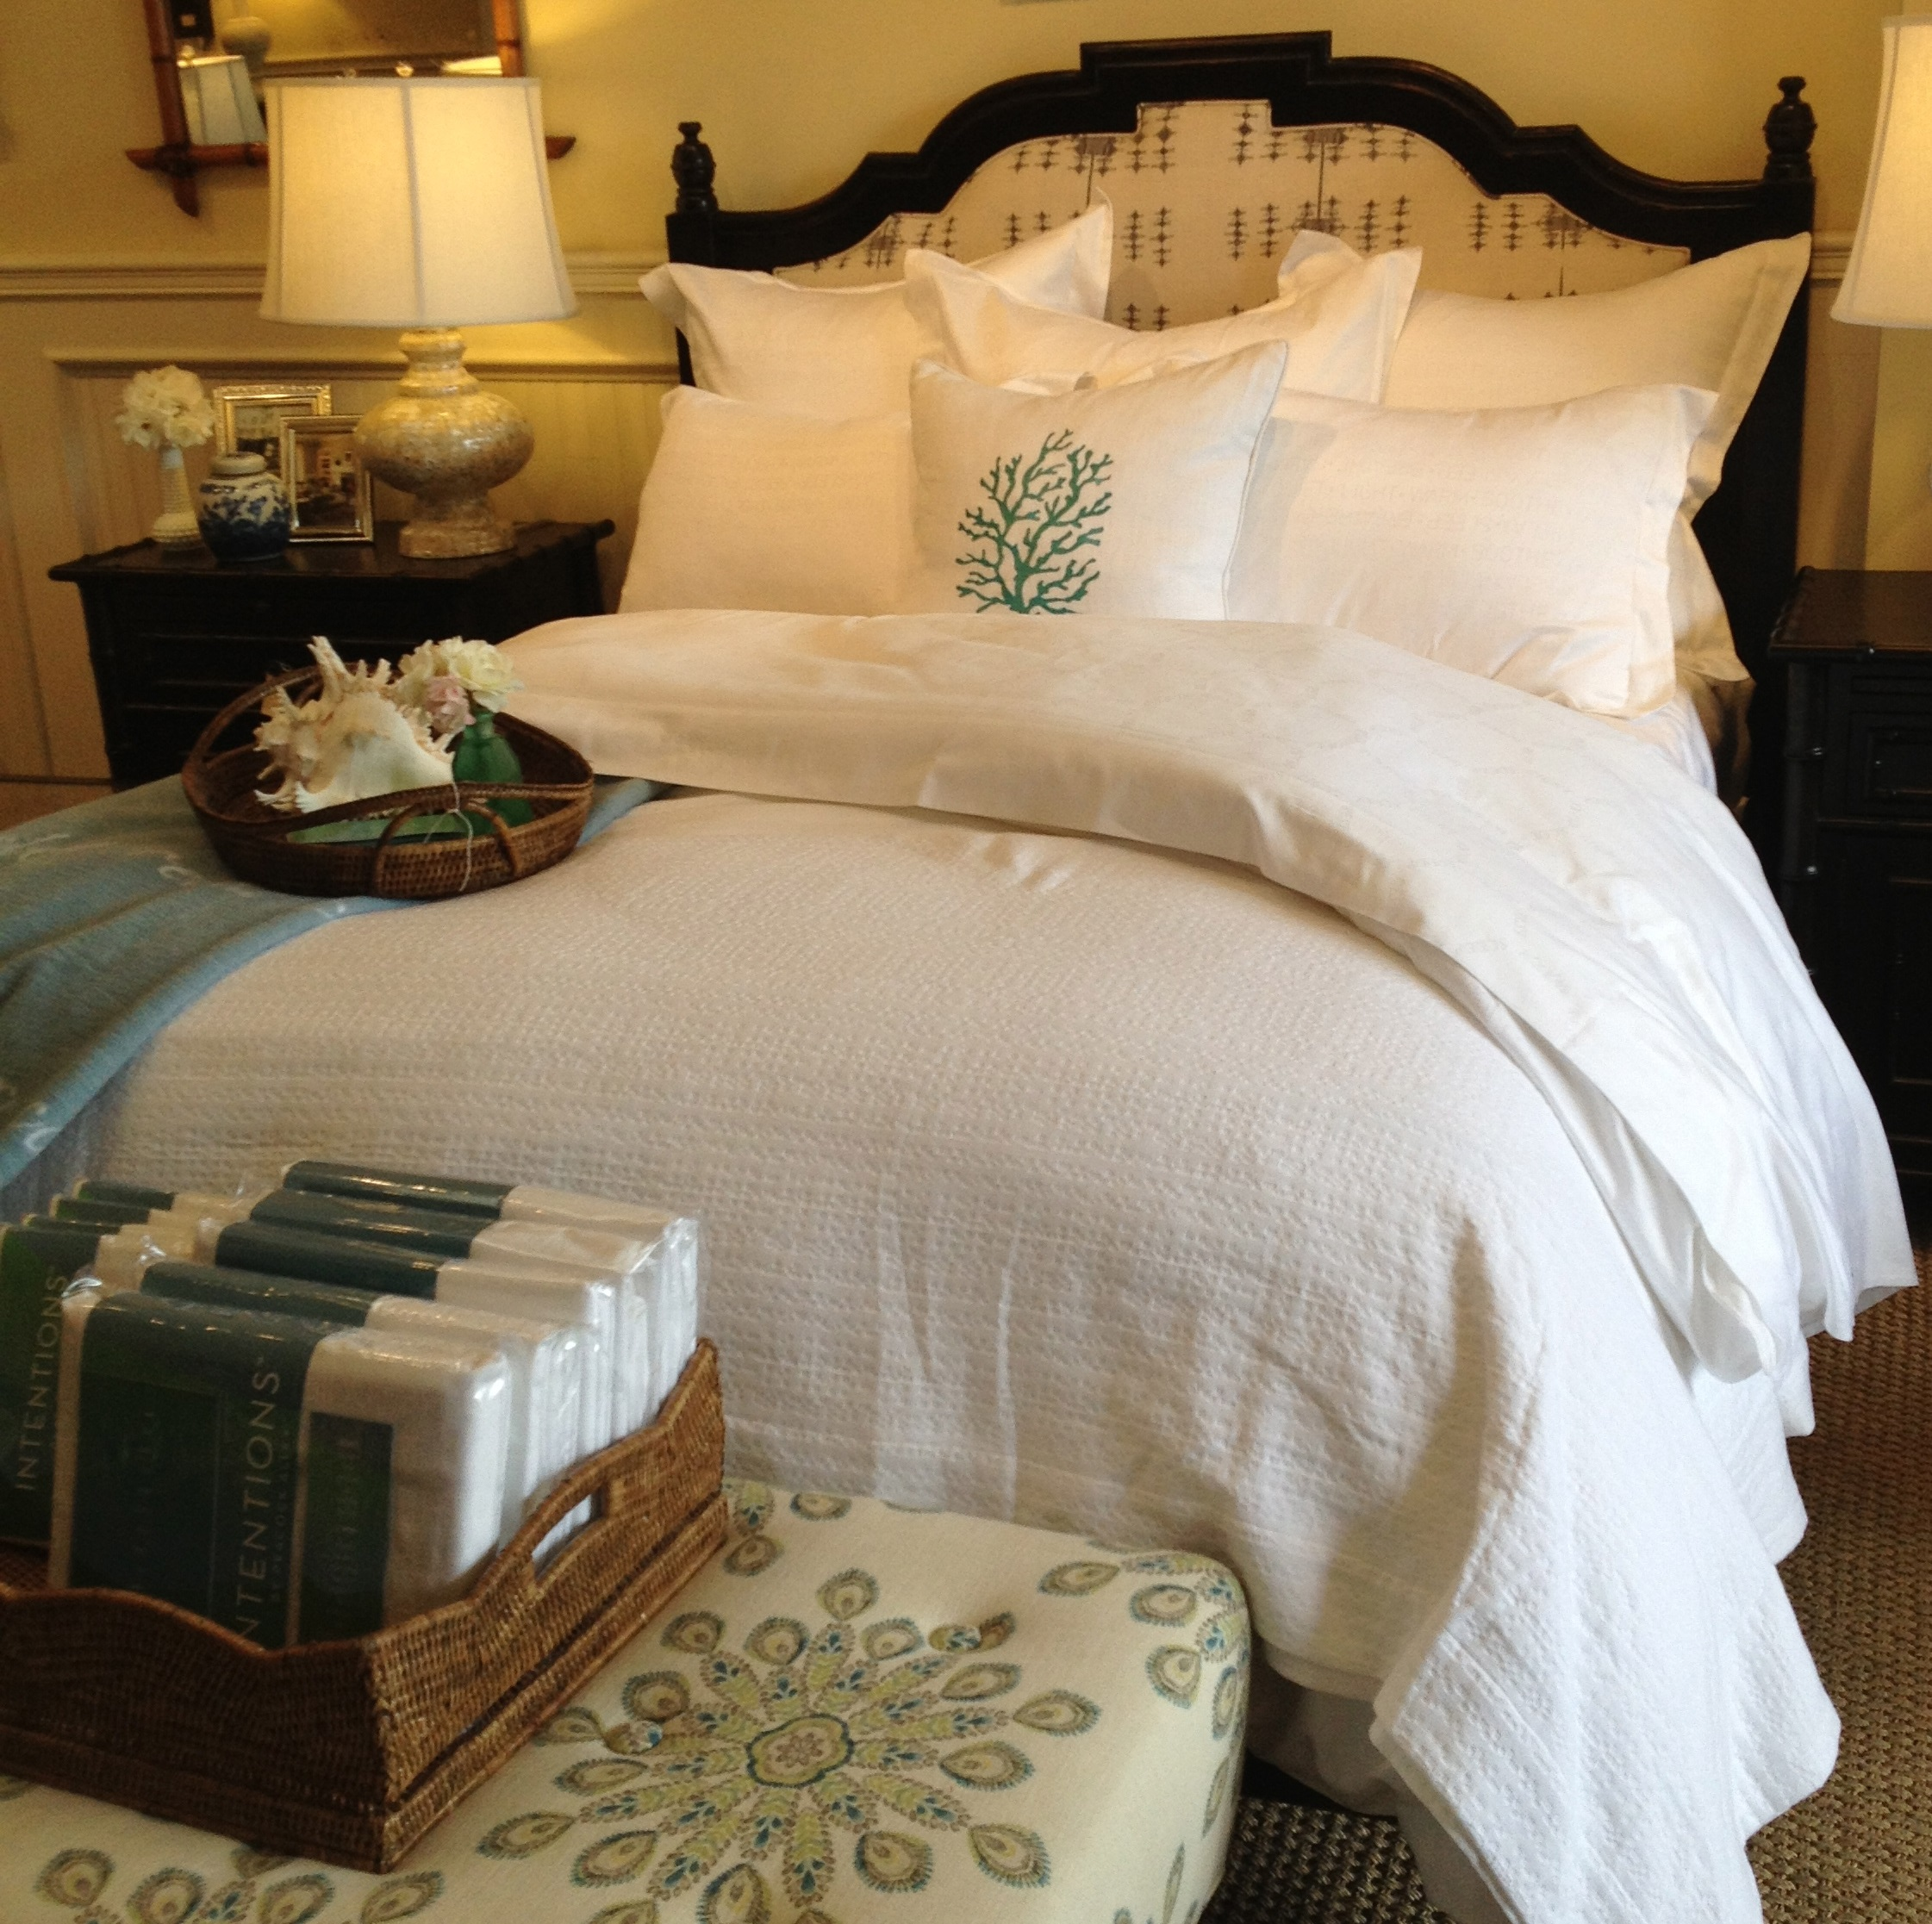 6 Ingredients For A Comfy Bed